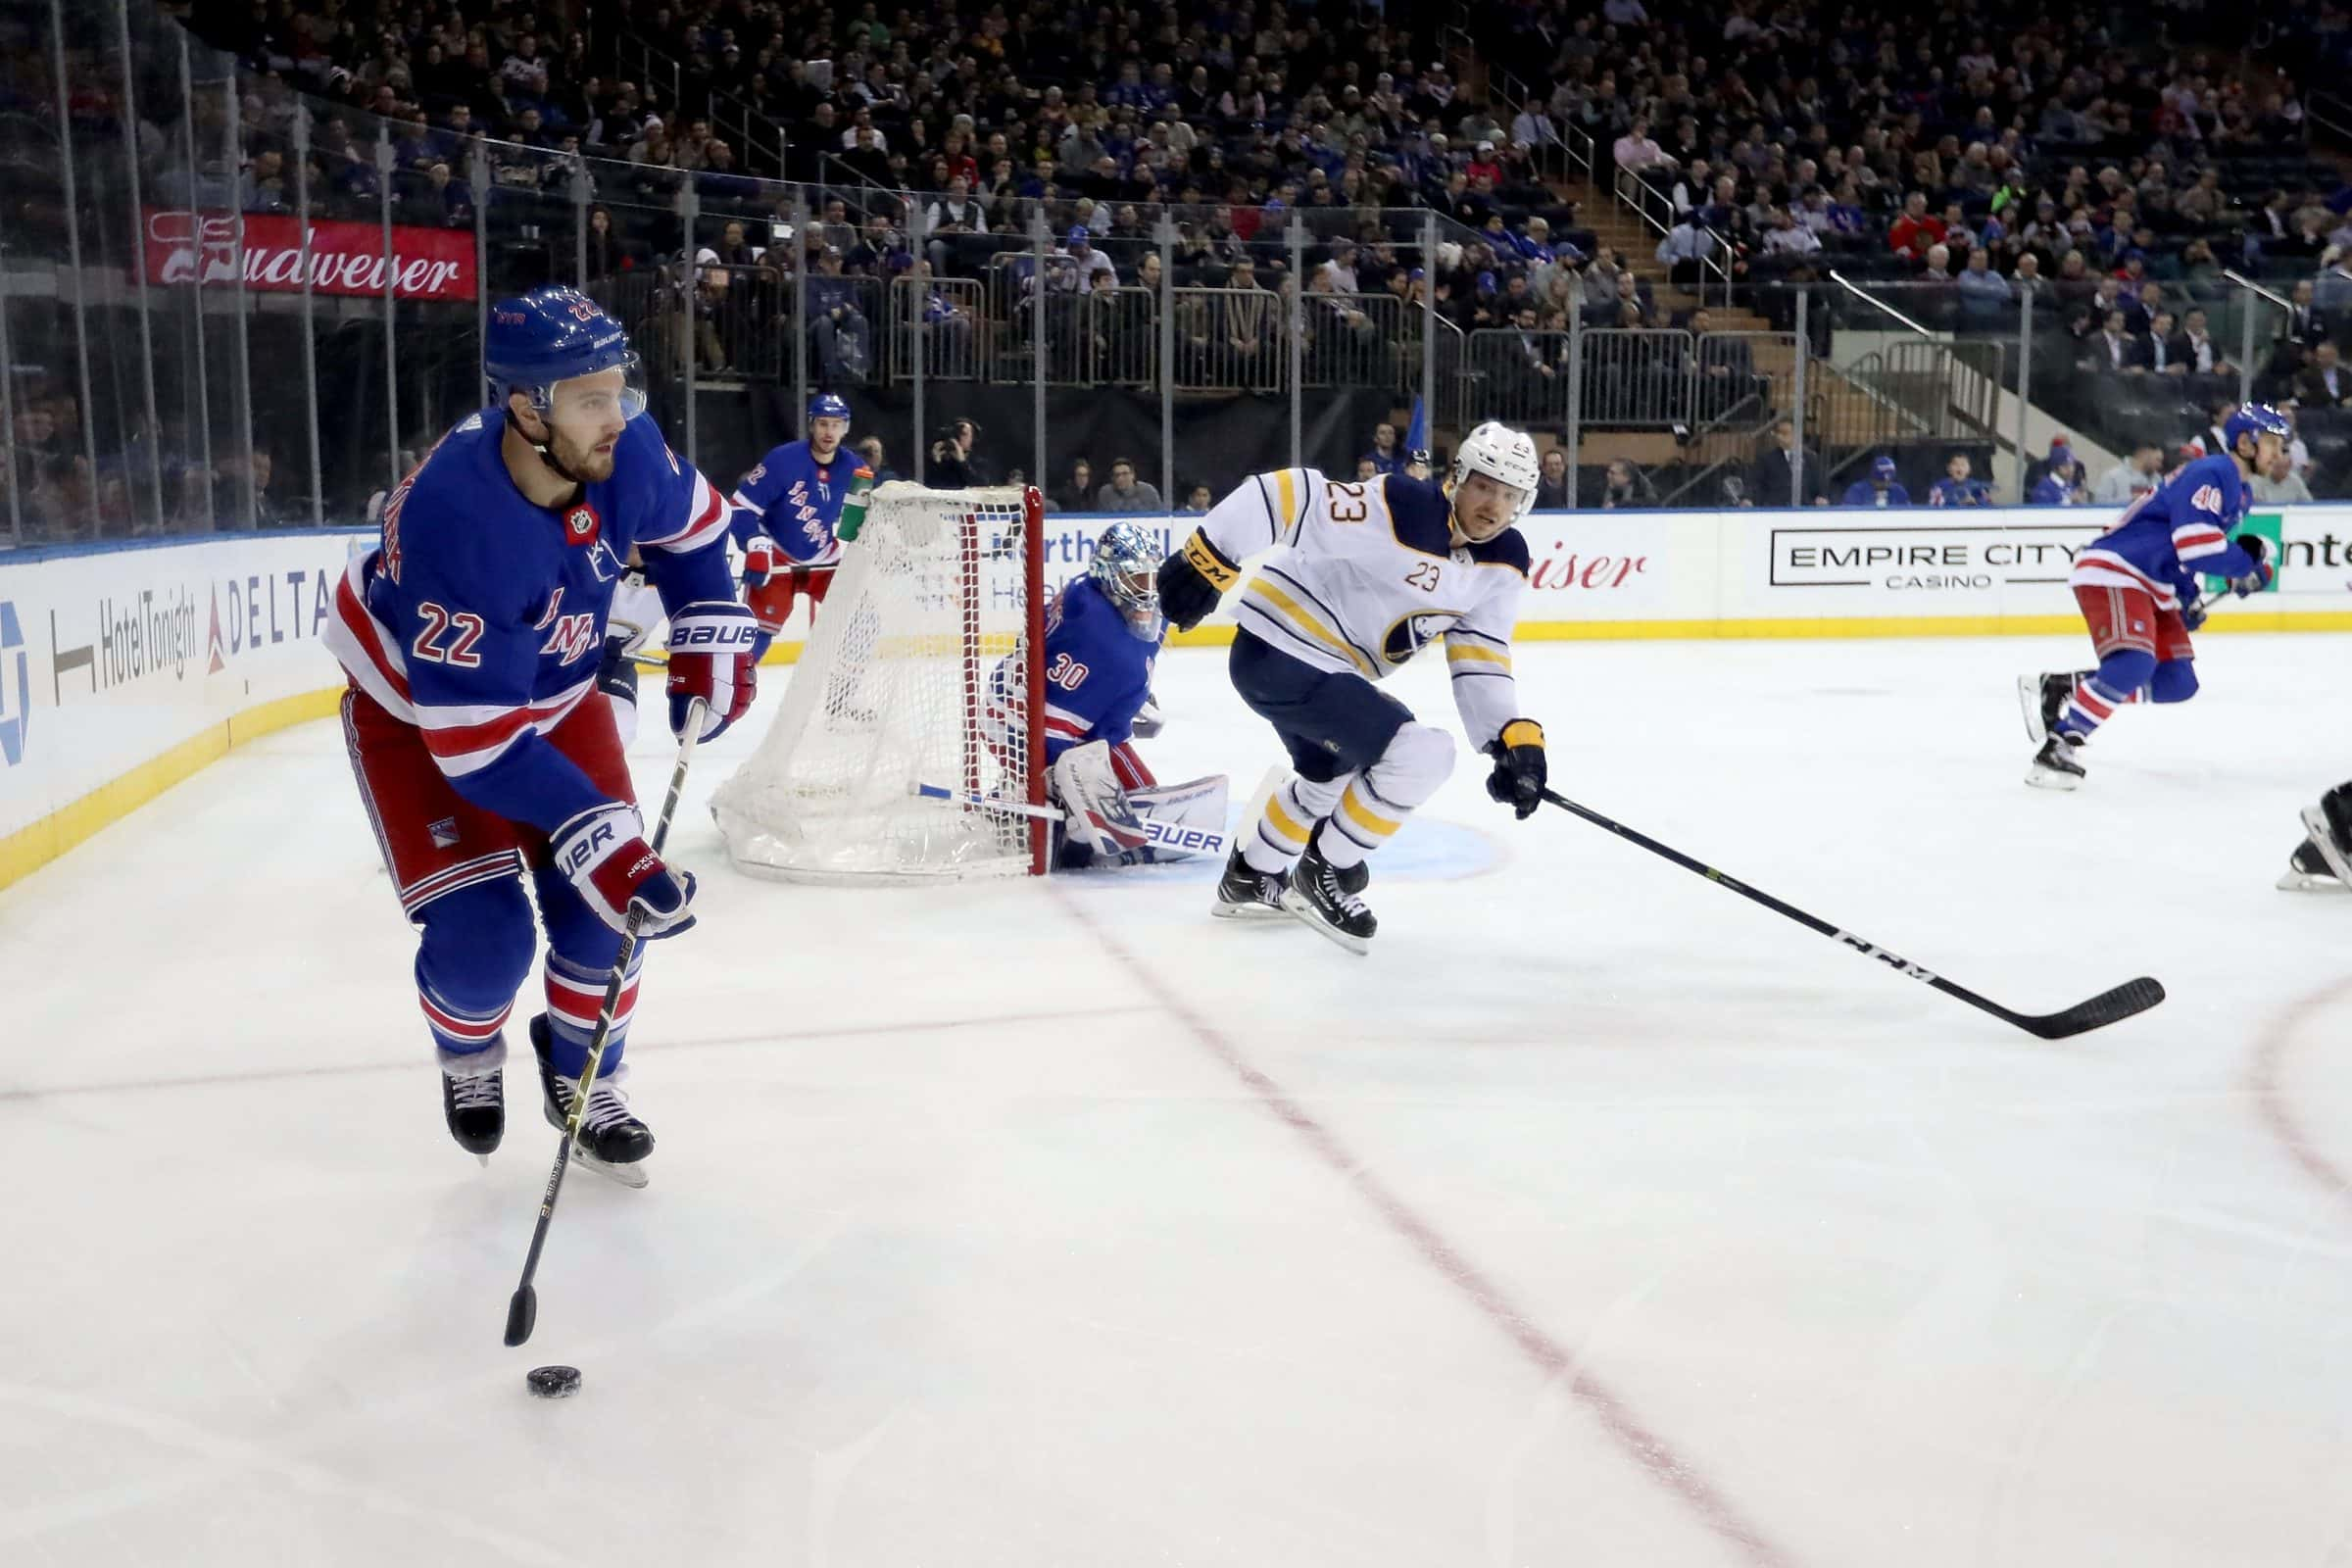 Buffalo-sabres-v-new-york-rangers-2